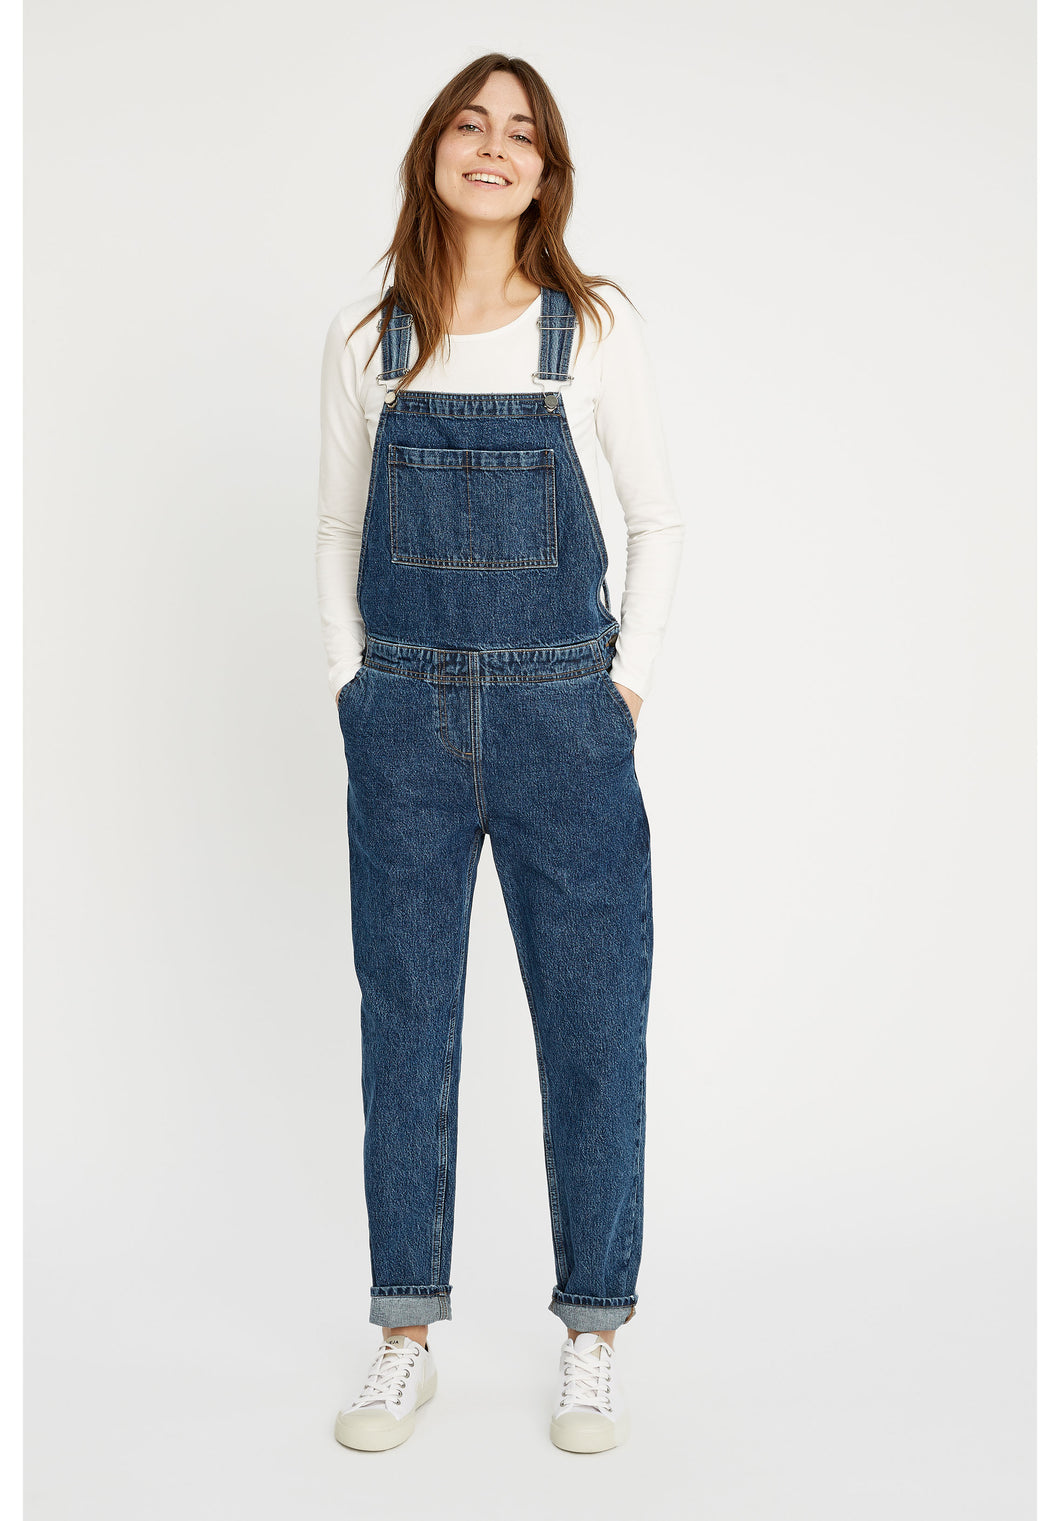 Brooklyn Denim Dungarees